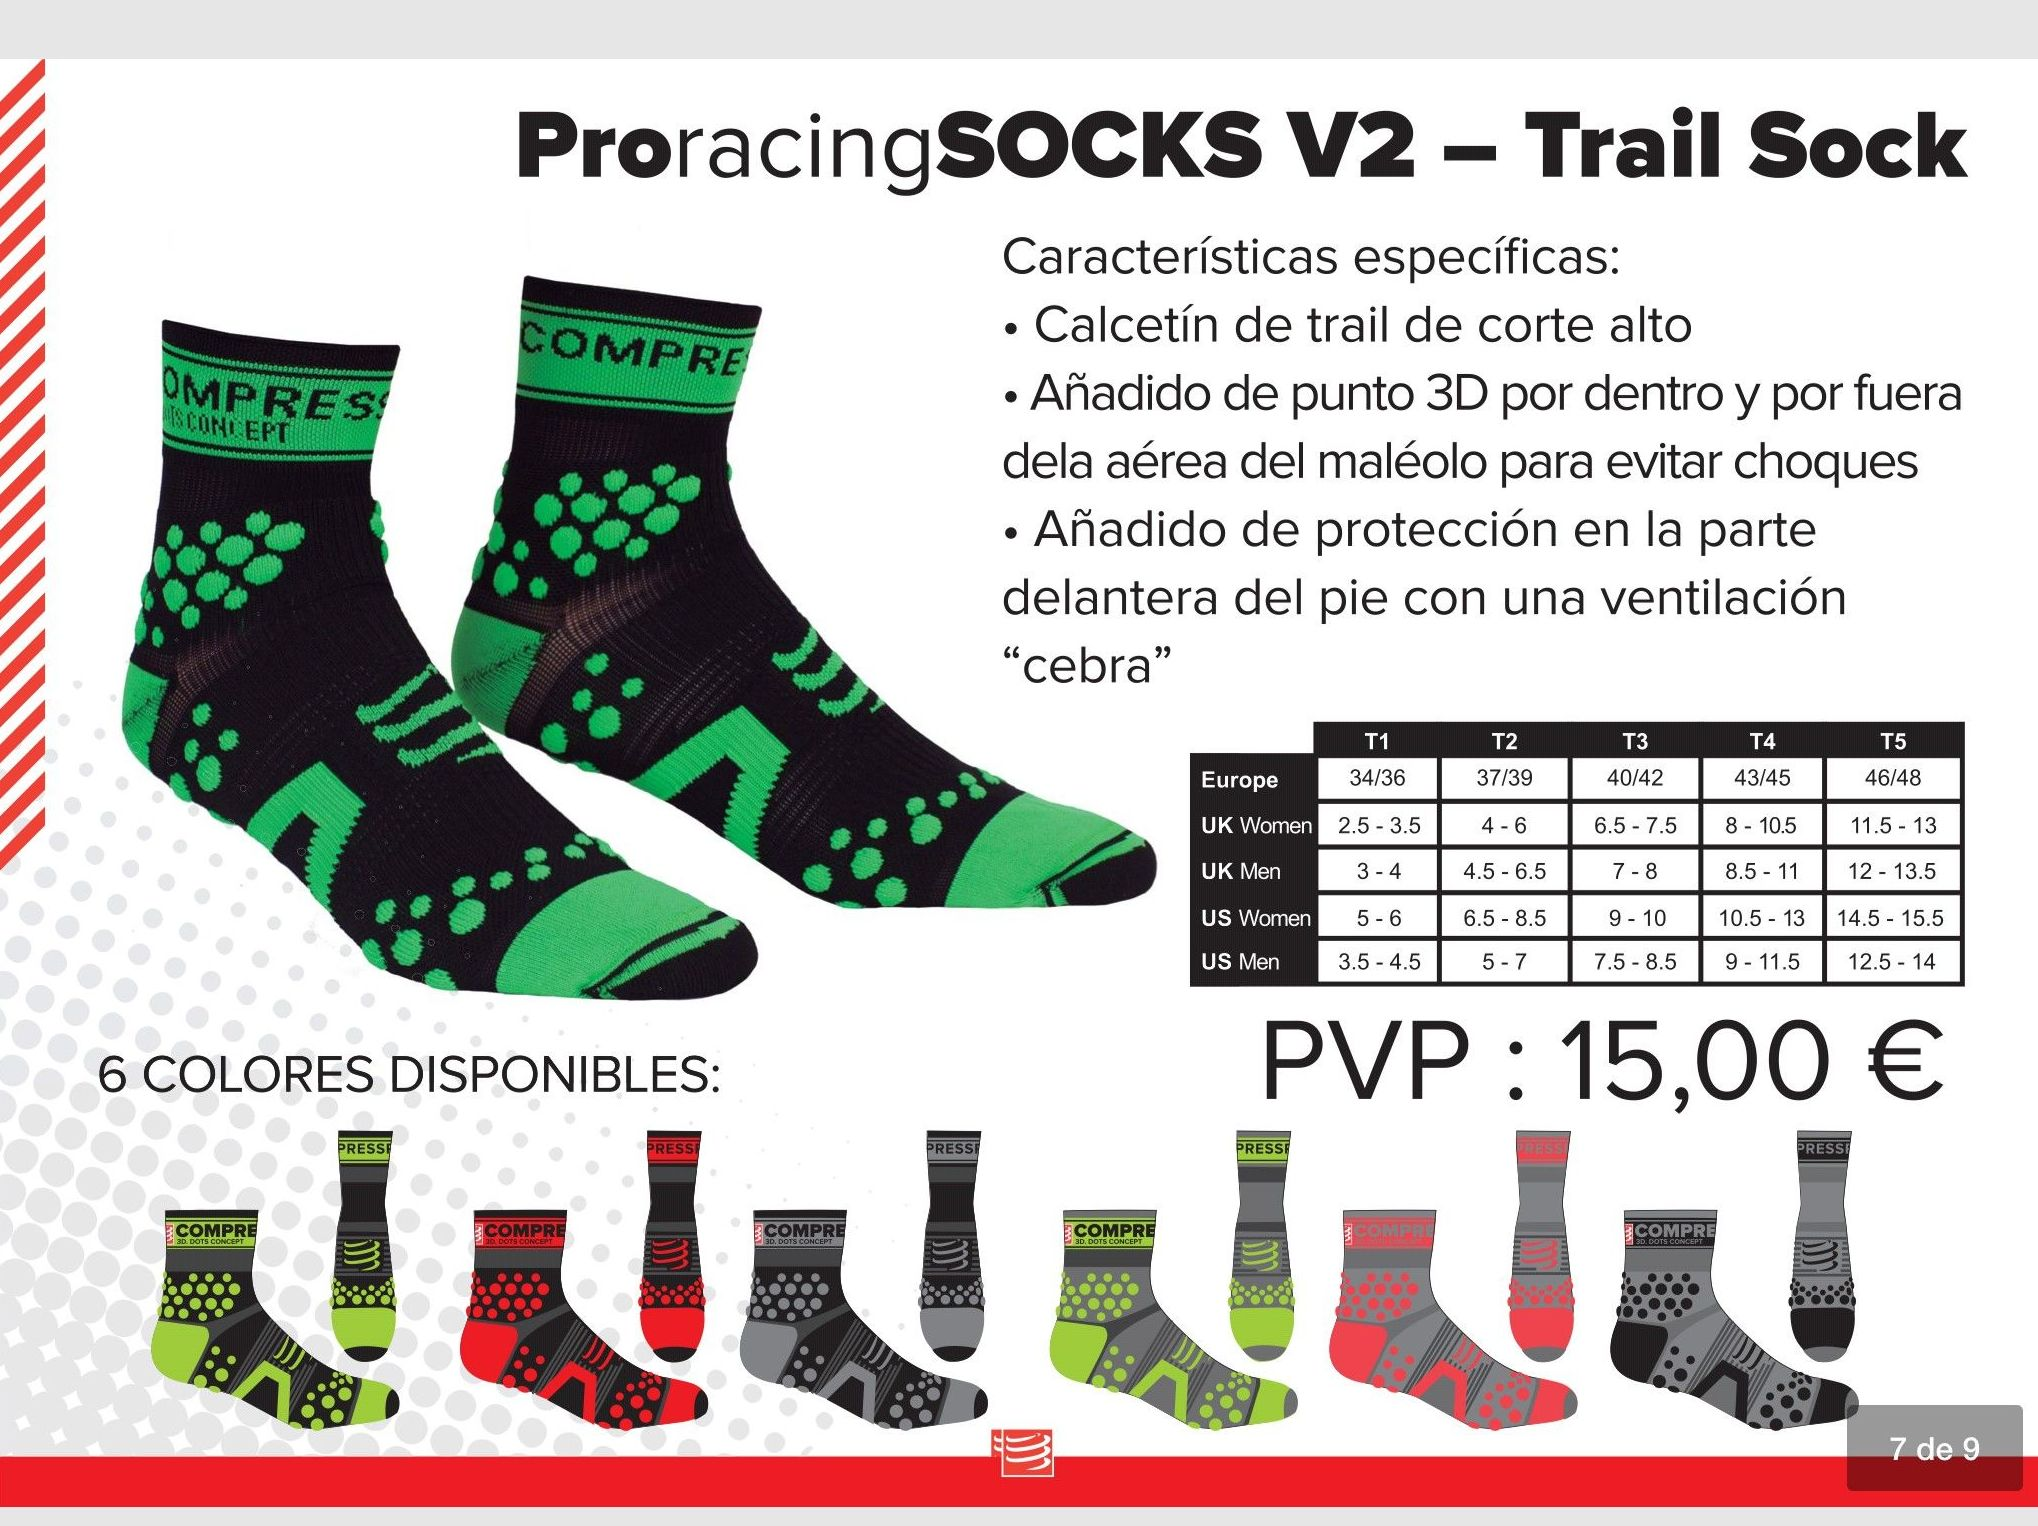 Pro racing Socks V2 Trail Sock: TIENDA ONLINE de Ortopedia La Fama